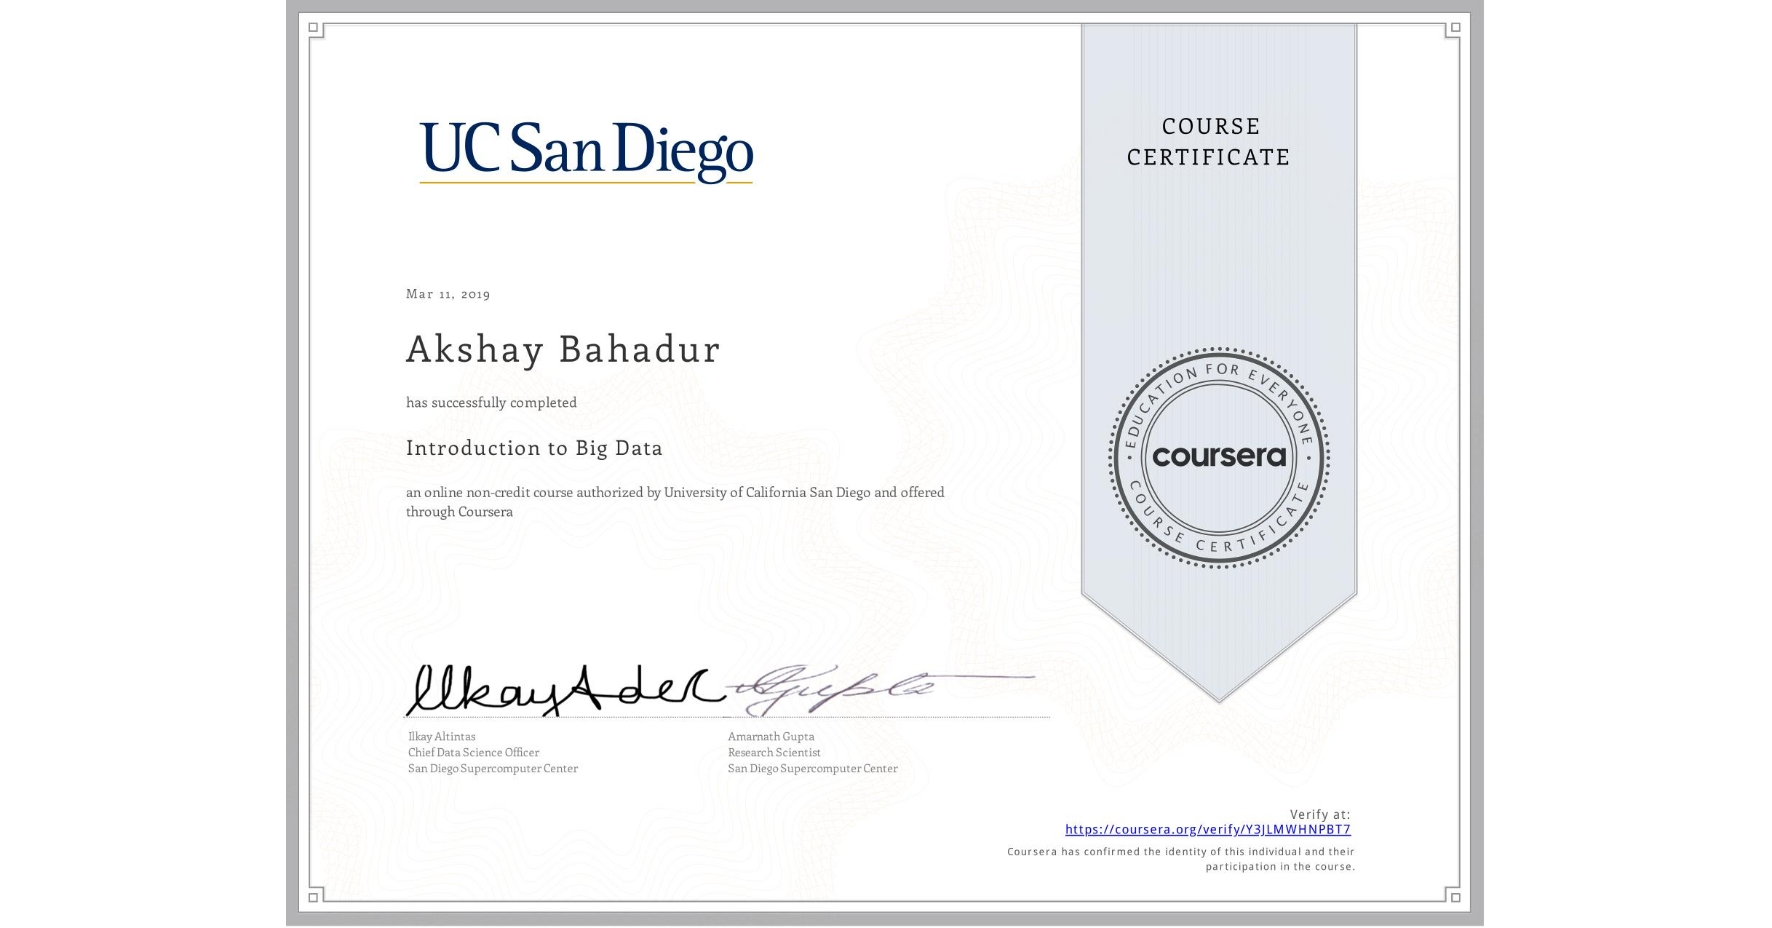 View certificate for Akshay Bahadur, Introduction to Big Data, an online non-credit course authorized by University of California San Diego and offered through Coursera